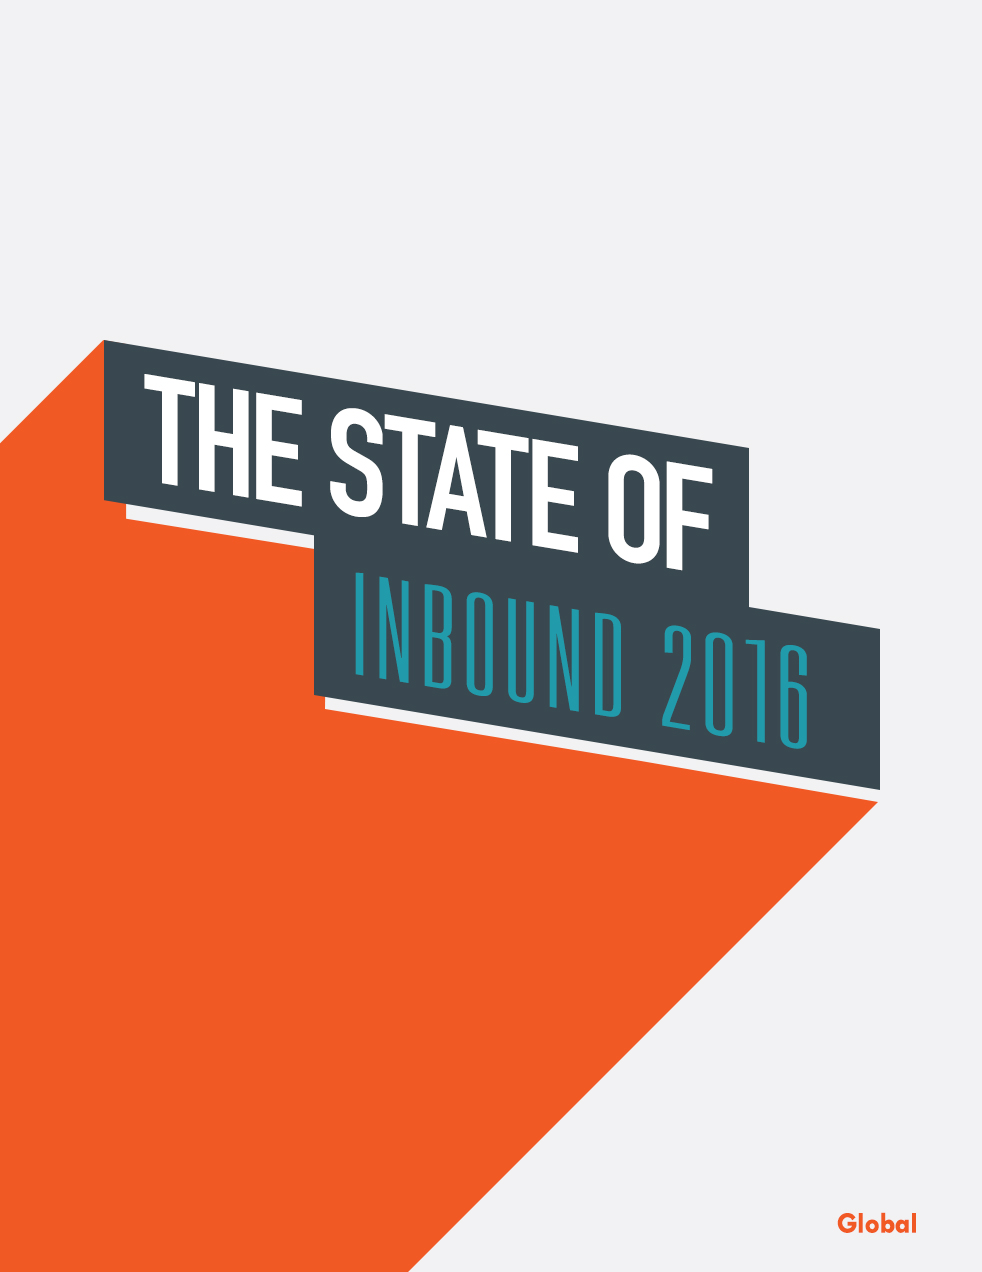 State-of_Inbound-2016-Cover.png